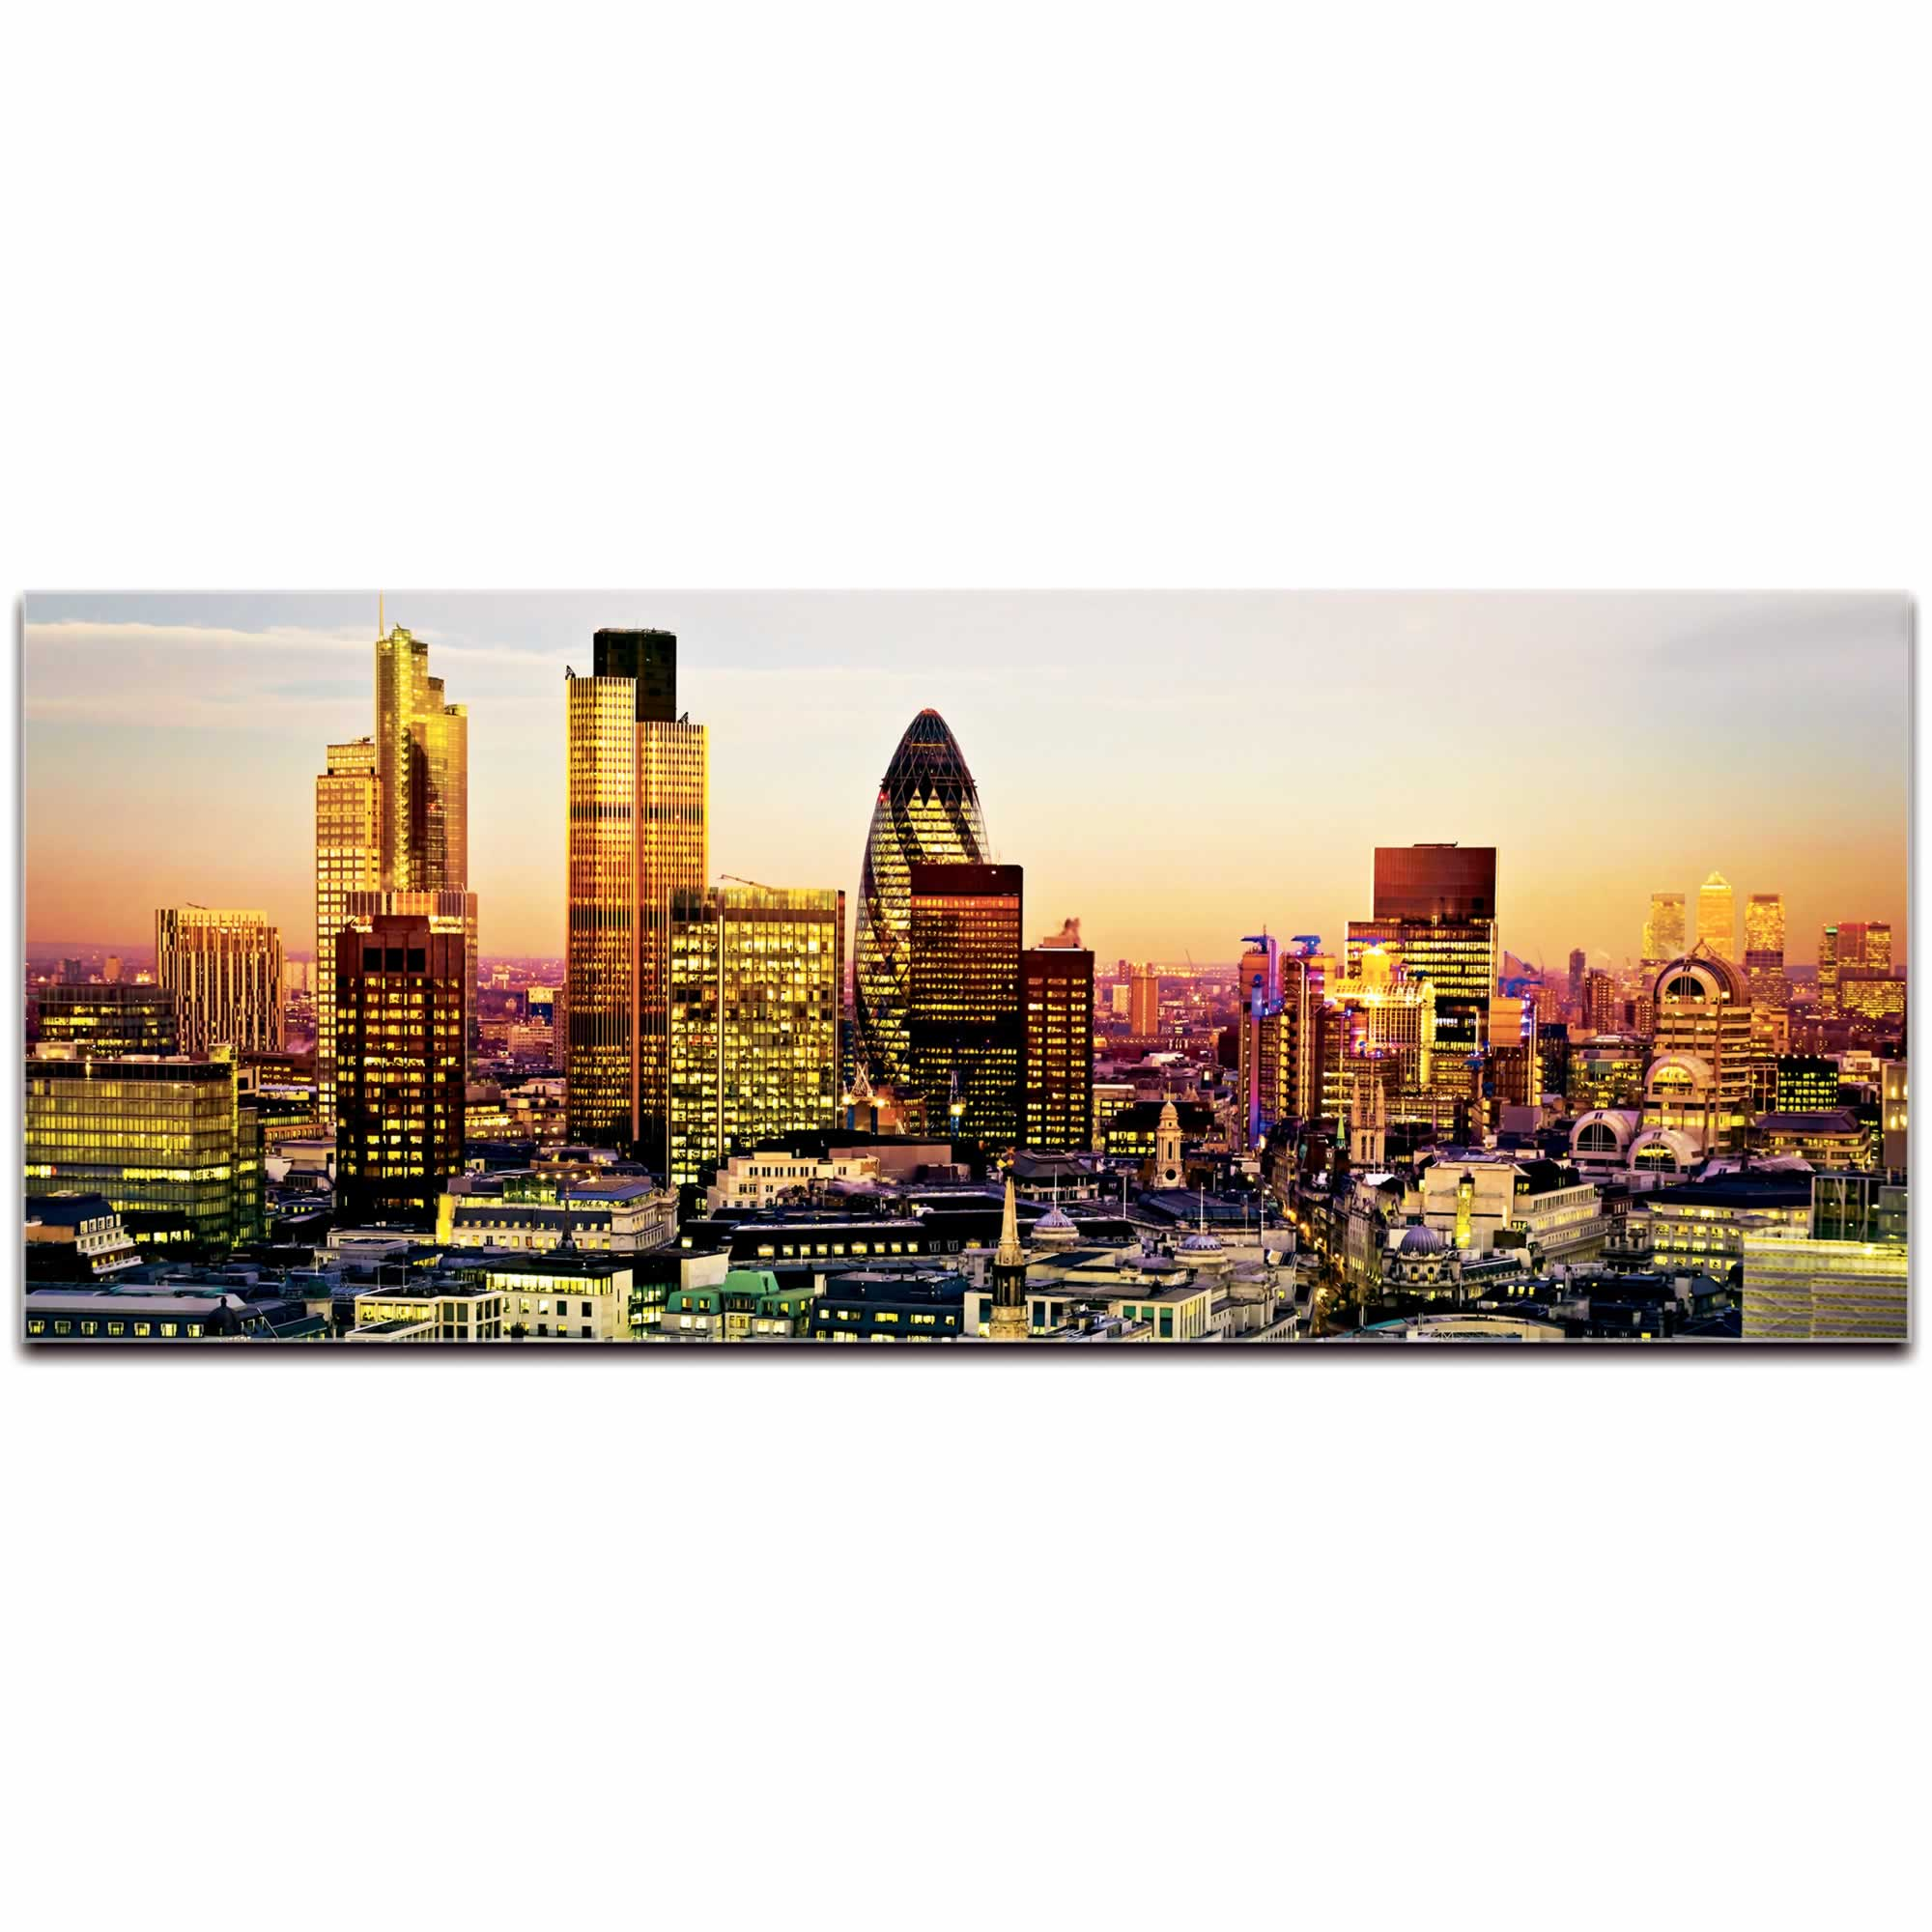 metal art studio london modern city skyline urban. Black Bedroom Furniture Sets. Home Design Ideas